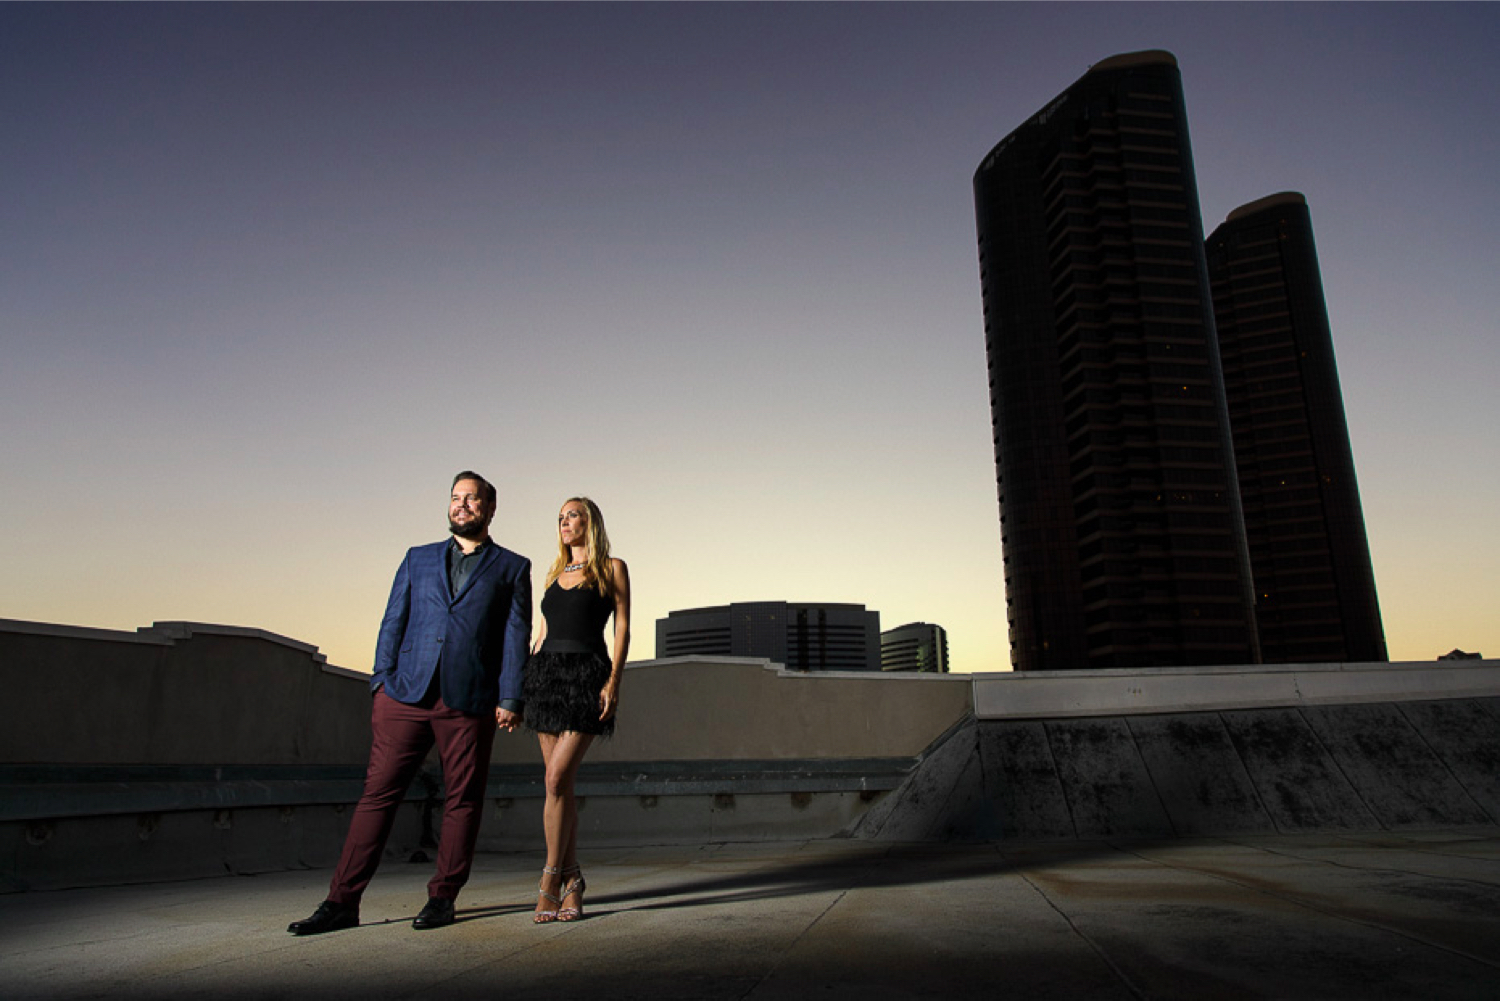 Image 3 of Carrie and Josh